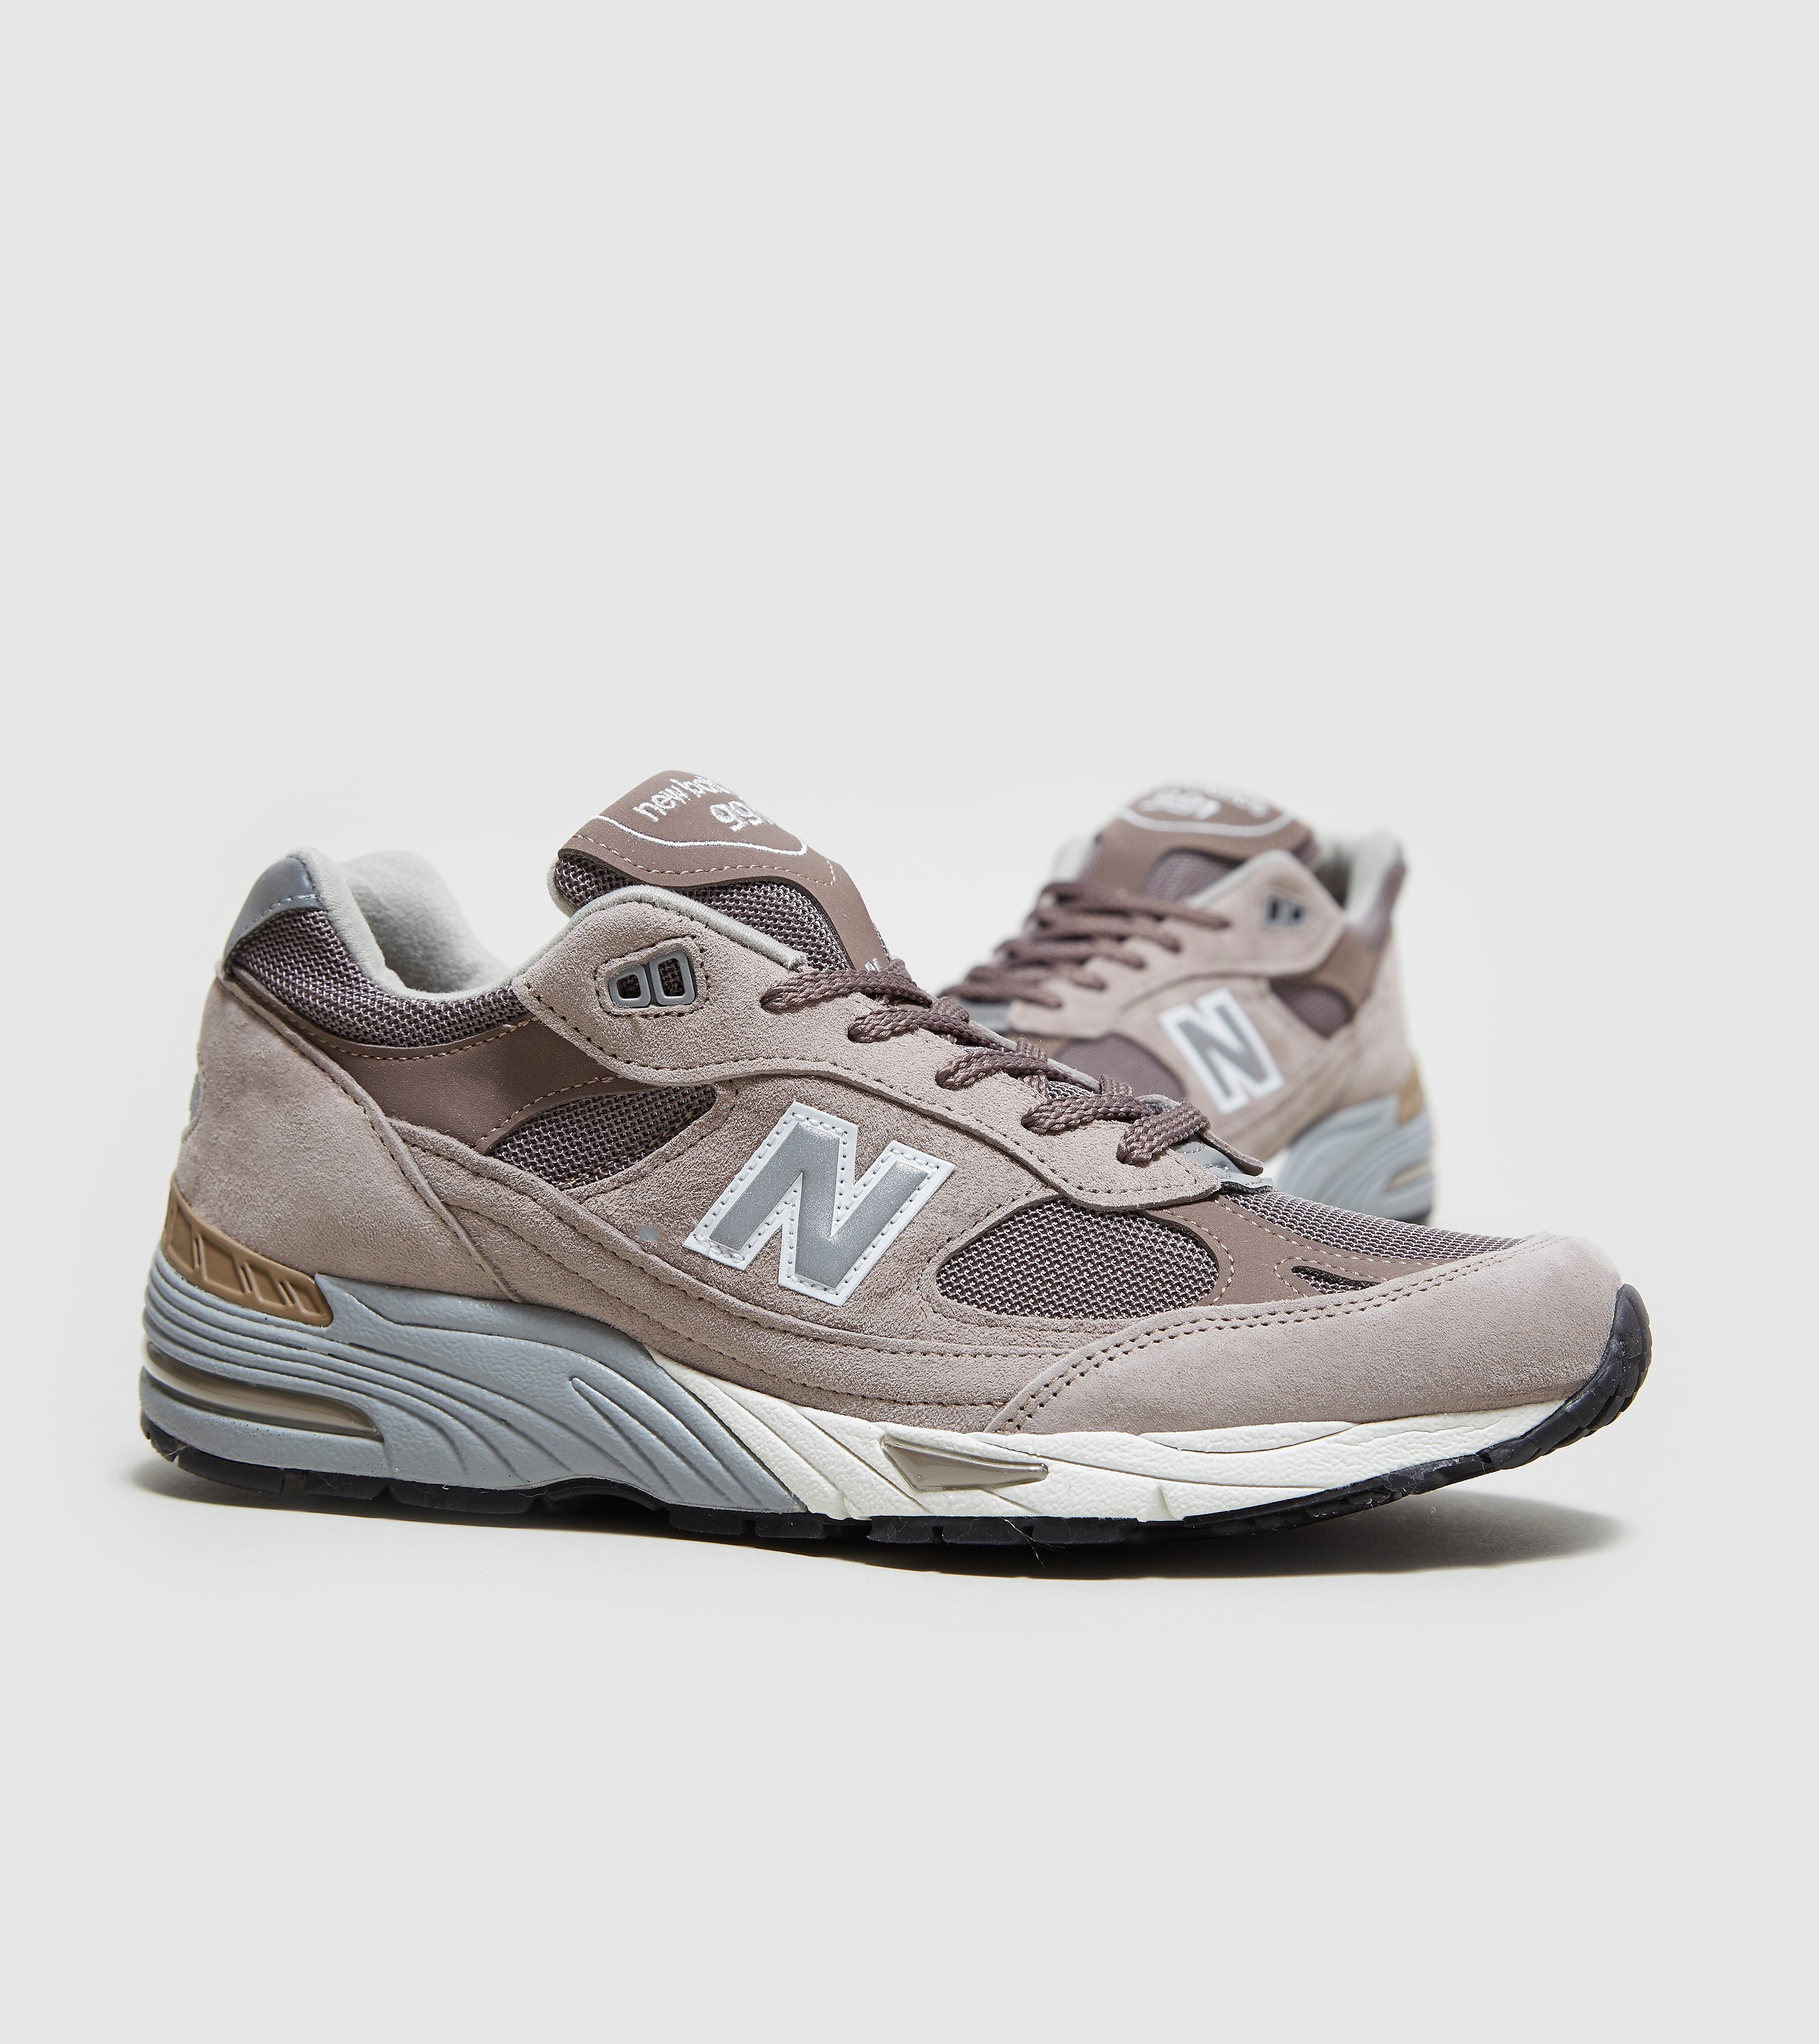 New Balance 991 'Made in UK'